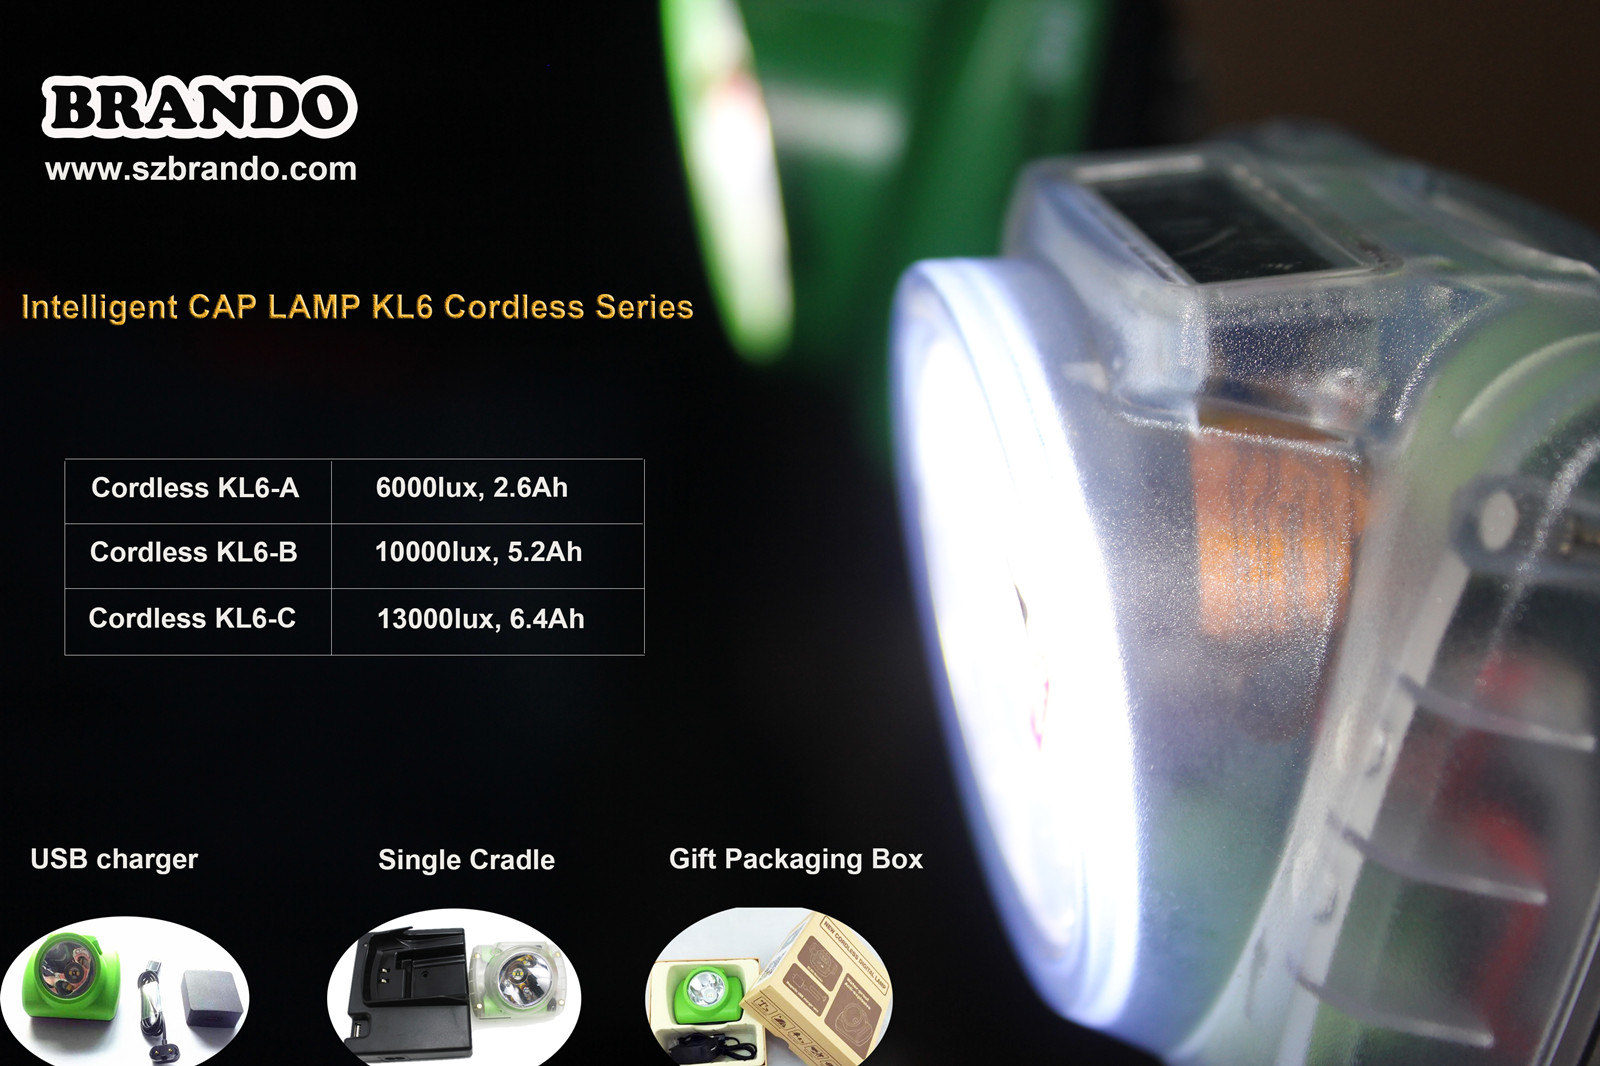 Brando KL6-C Cap Lamp's Manual